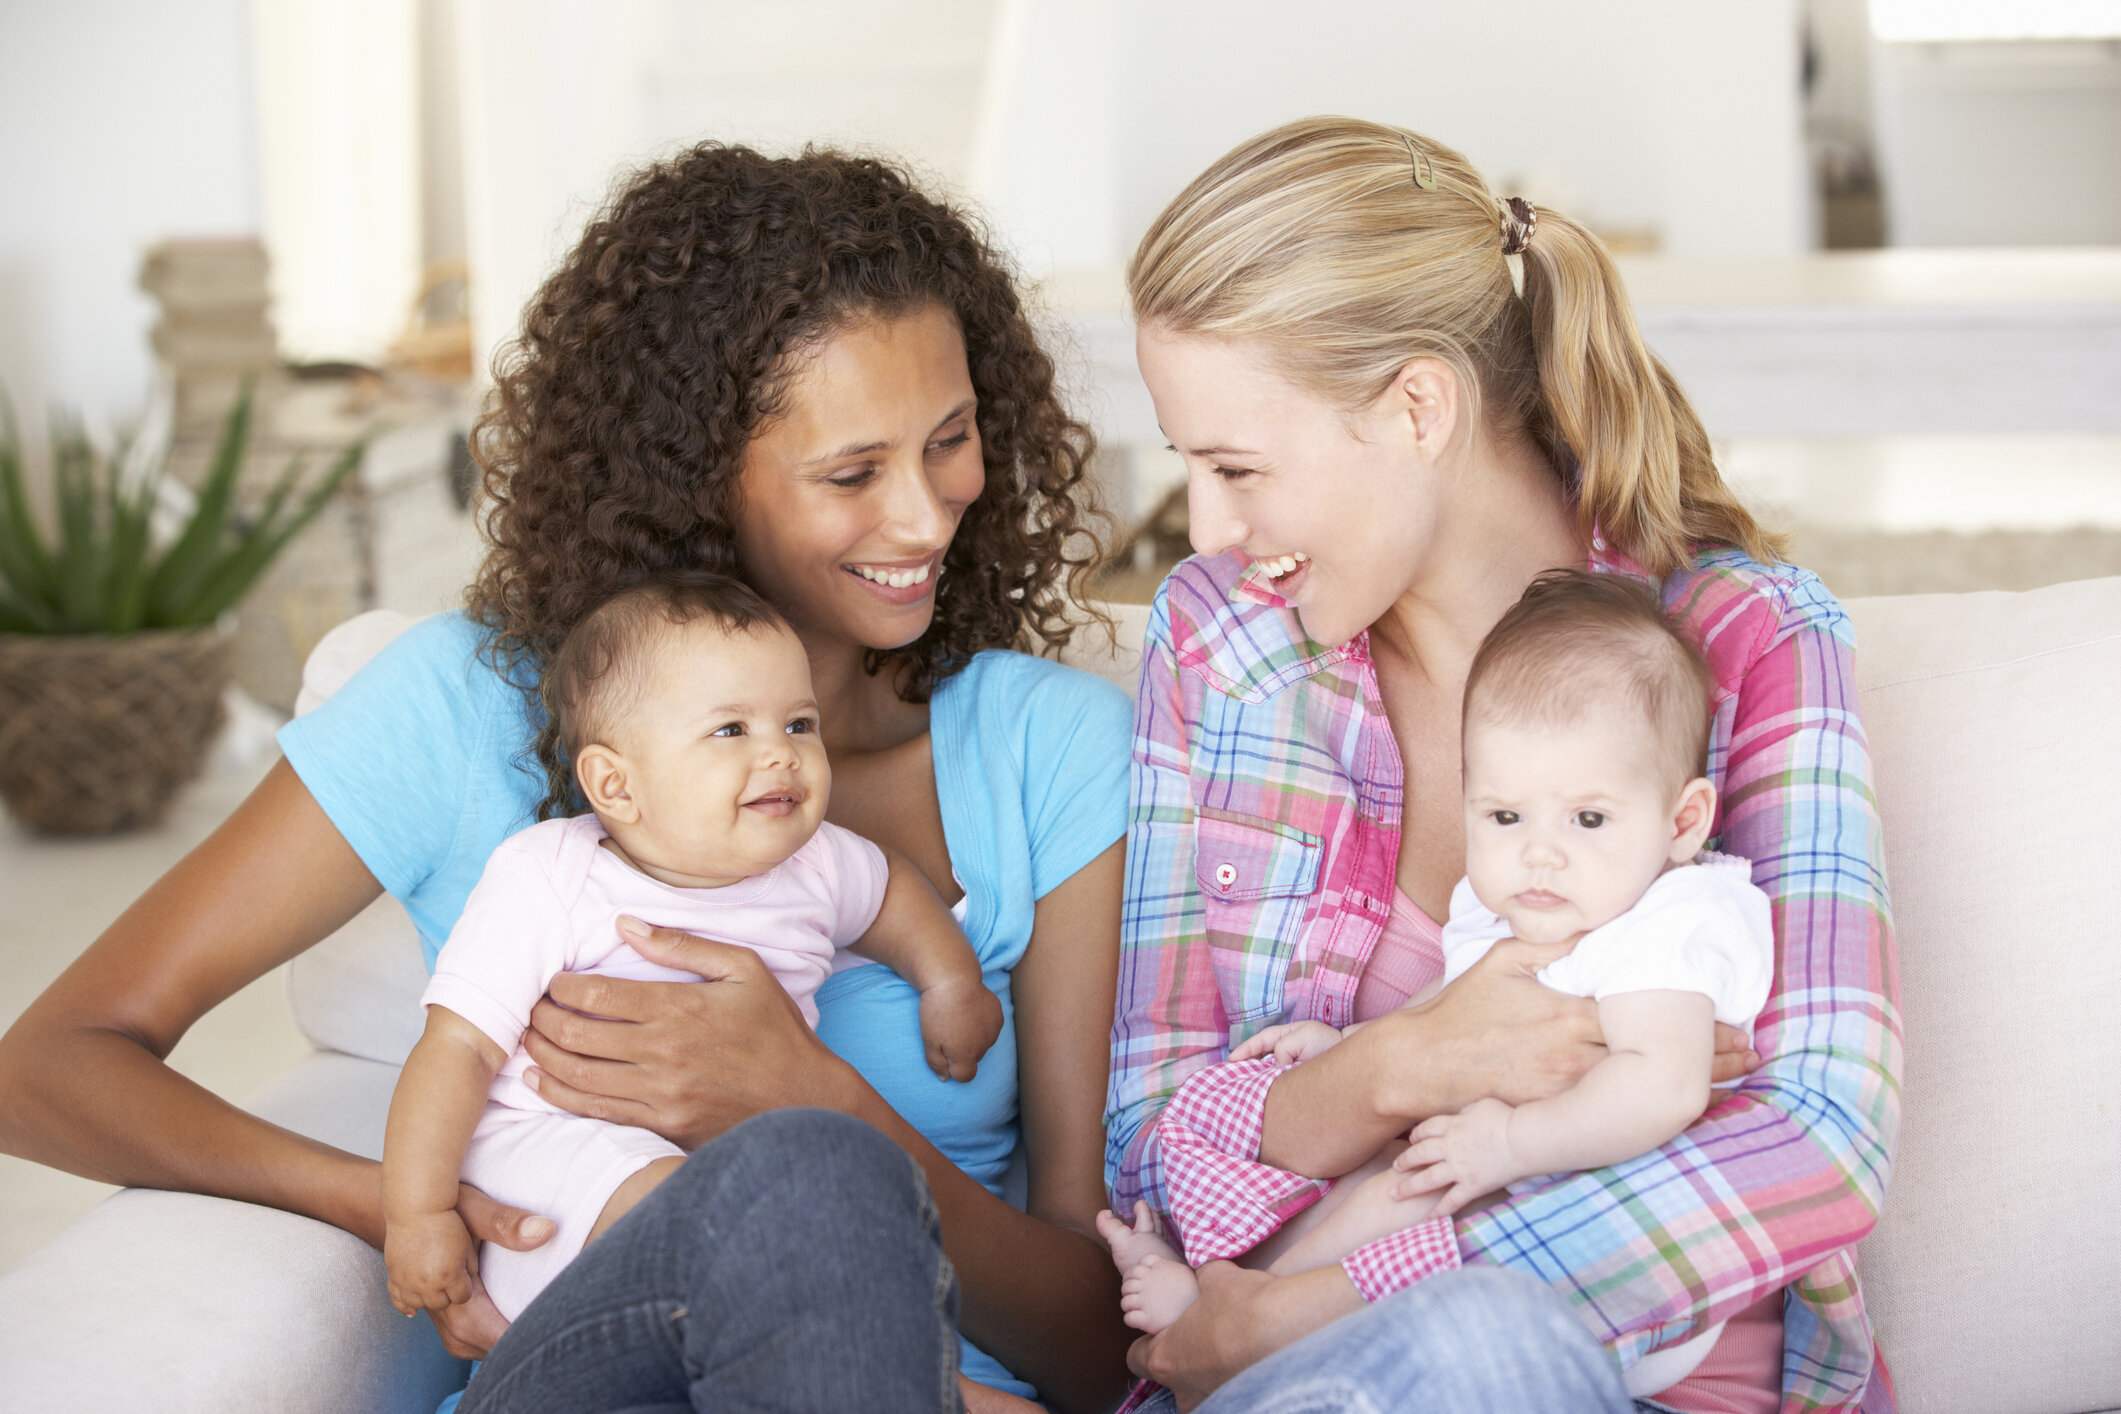 """""""Drop in"""" Group for Pregnant and Postpartum Women - Wednesdays at 10 am at North Star Wellness $25/sessionEach meeting is facilitated by a perinatal mental health therapist.Come once, come weekly, come as many times as you need. This is a safe place to talk about your emotions, experiences, and thoughts about motherhood.Babies always welcome!If this is your first time coming to group, please email or call before registering."""